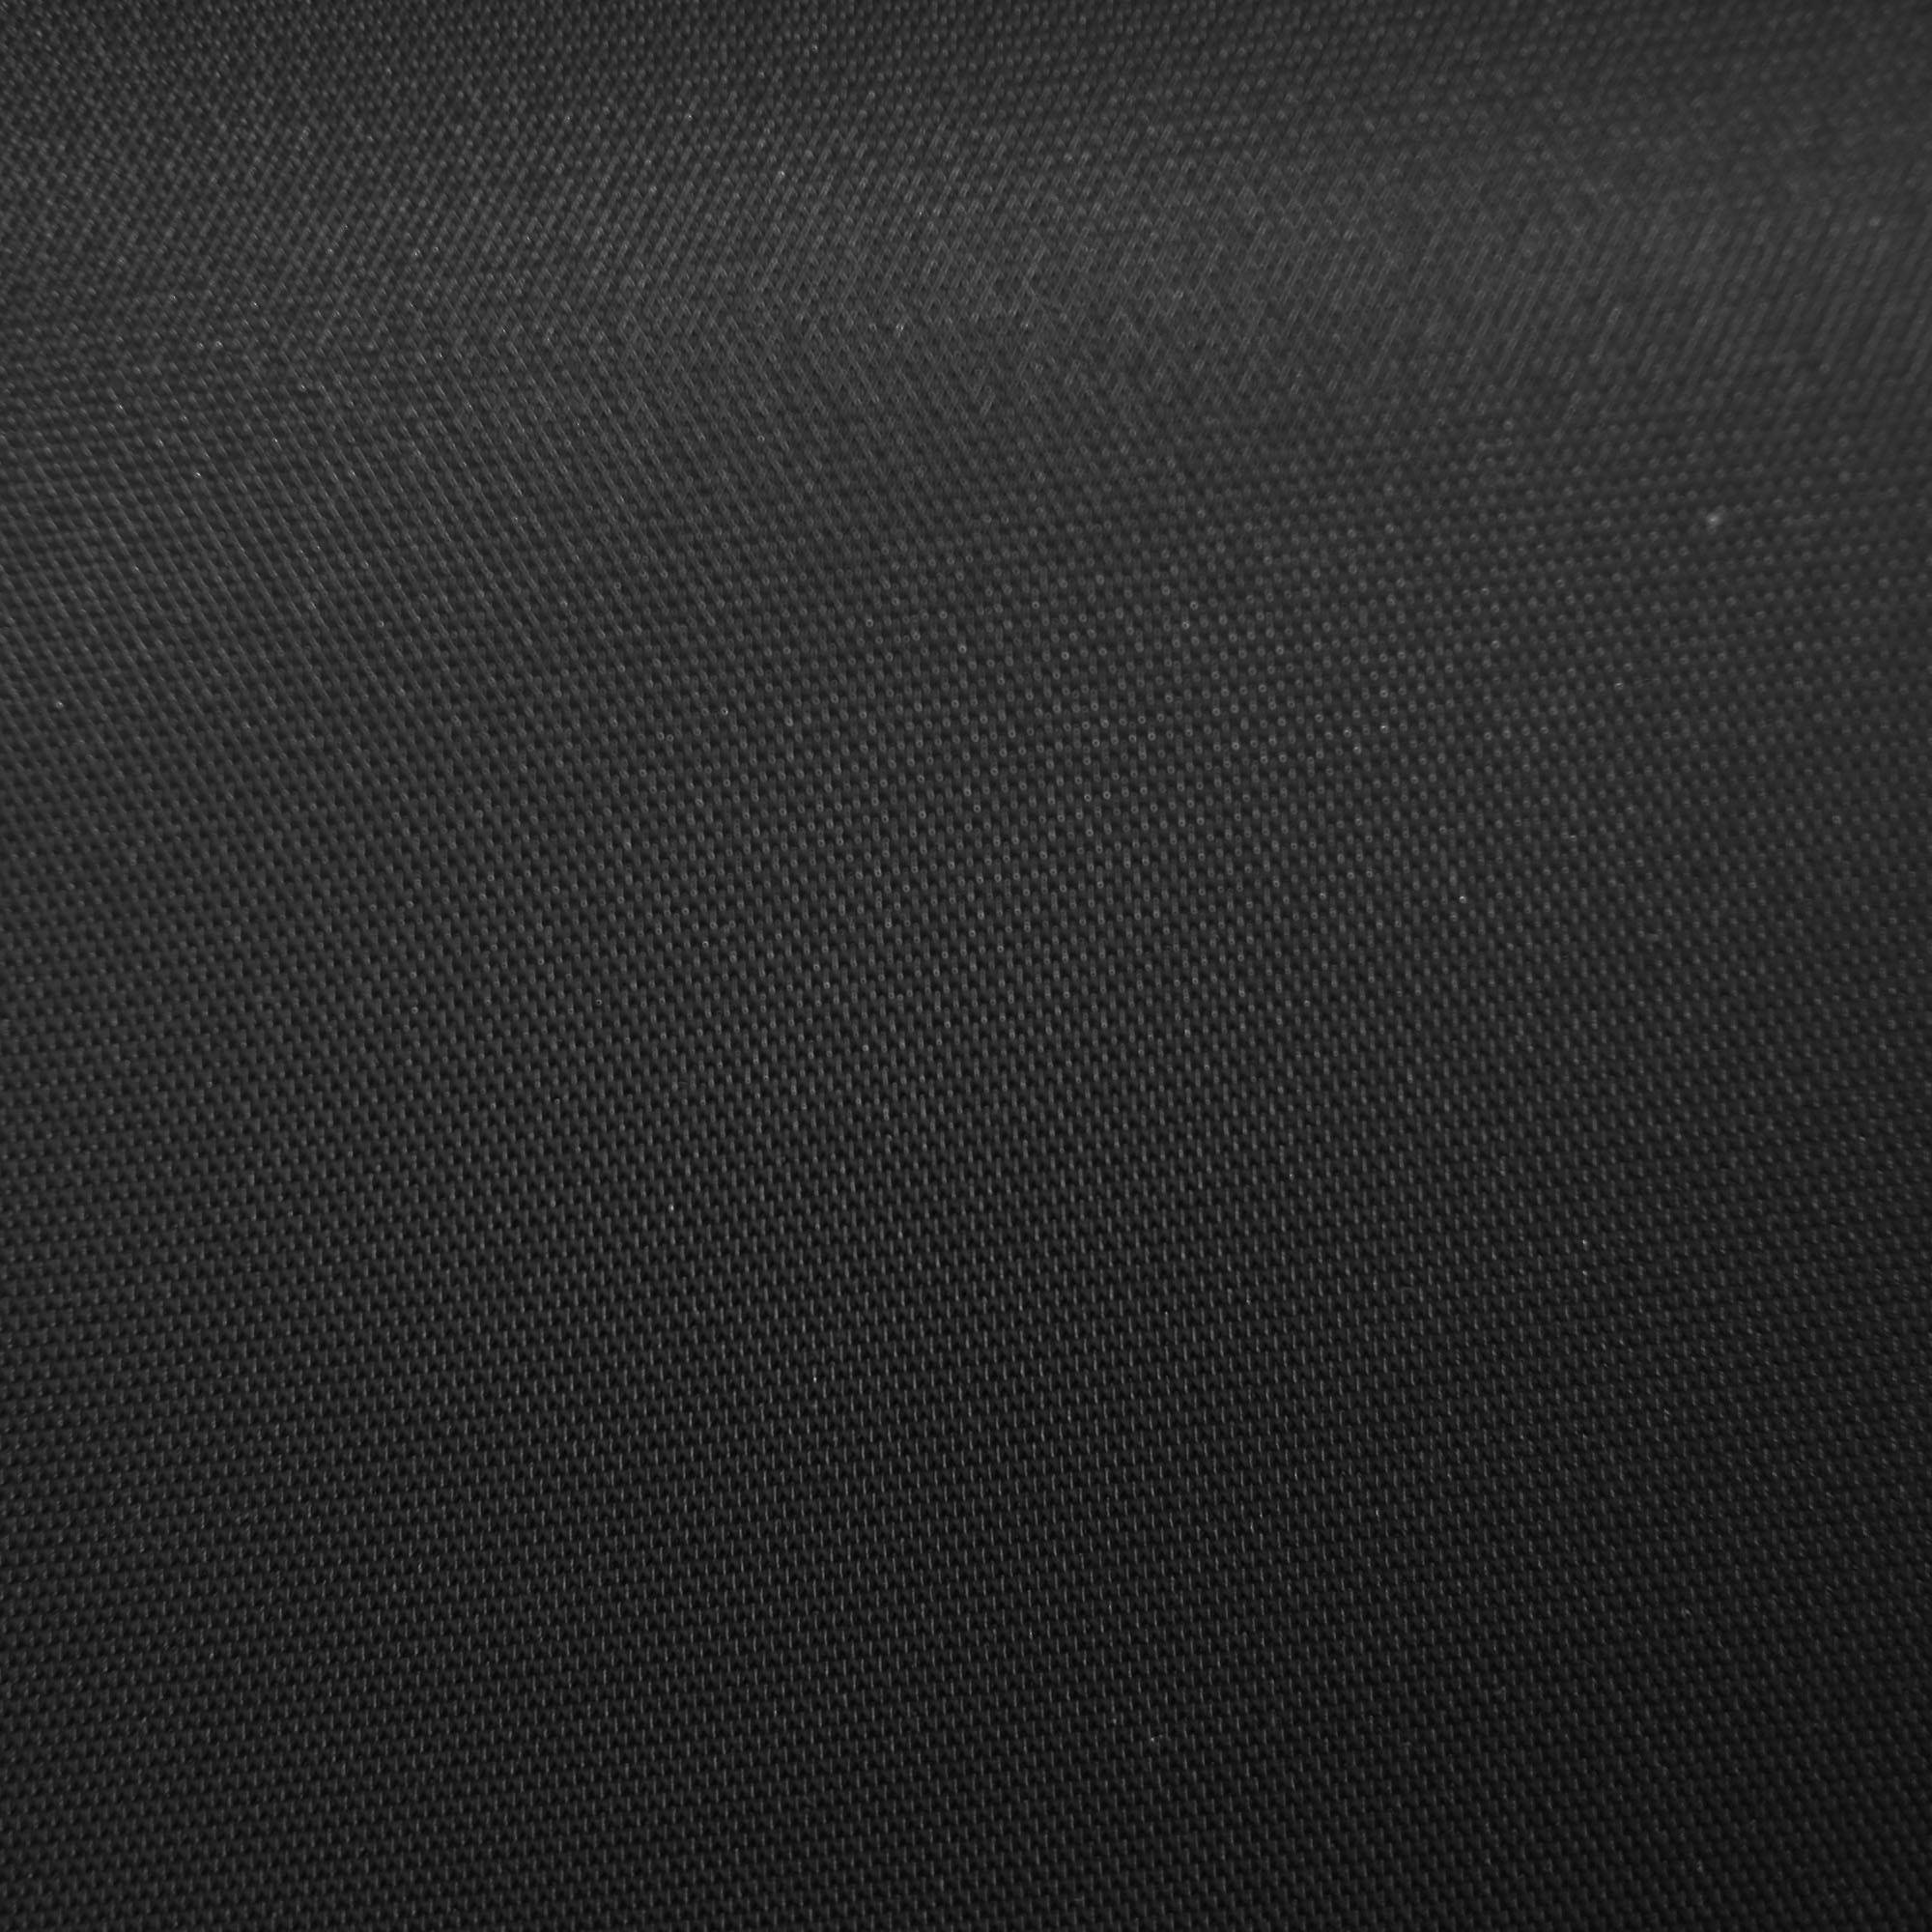 Savage Infinity Vinyl Background - 9 x 20' (Matte Black)